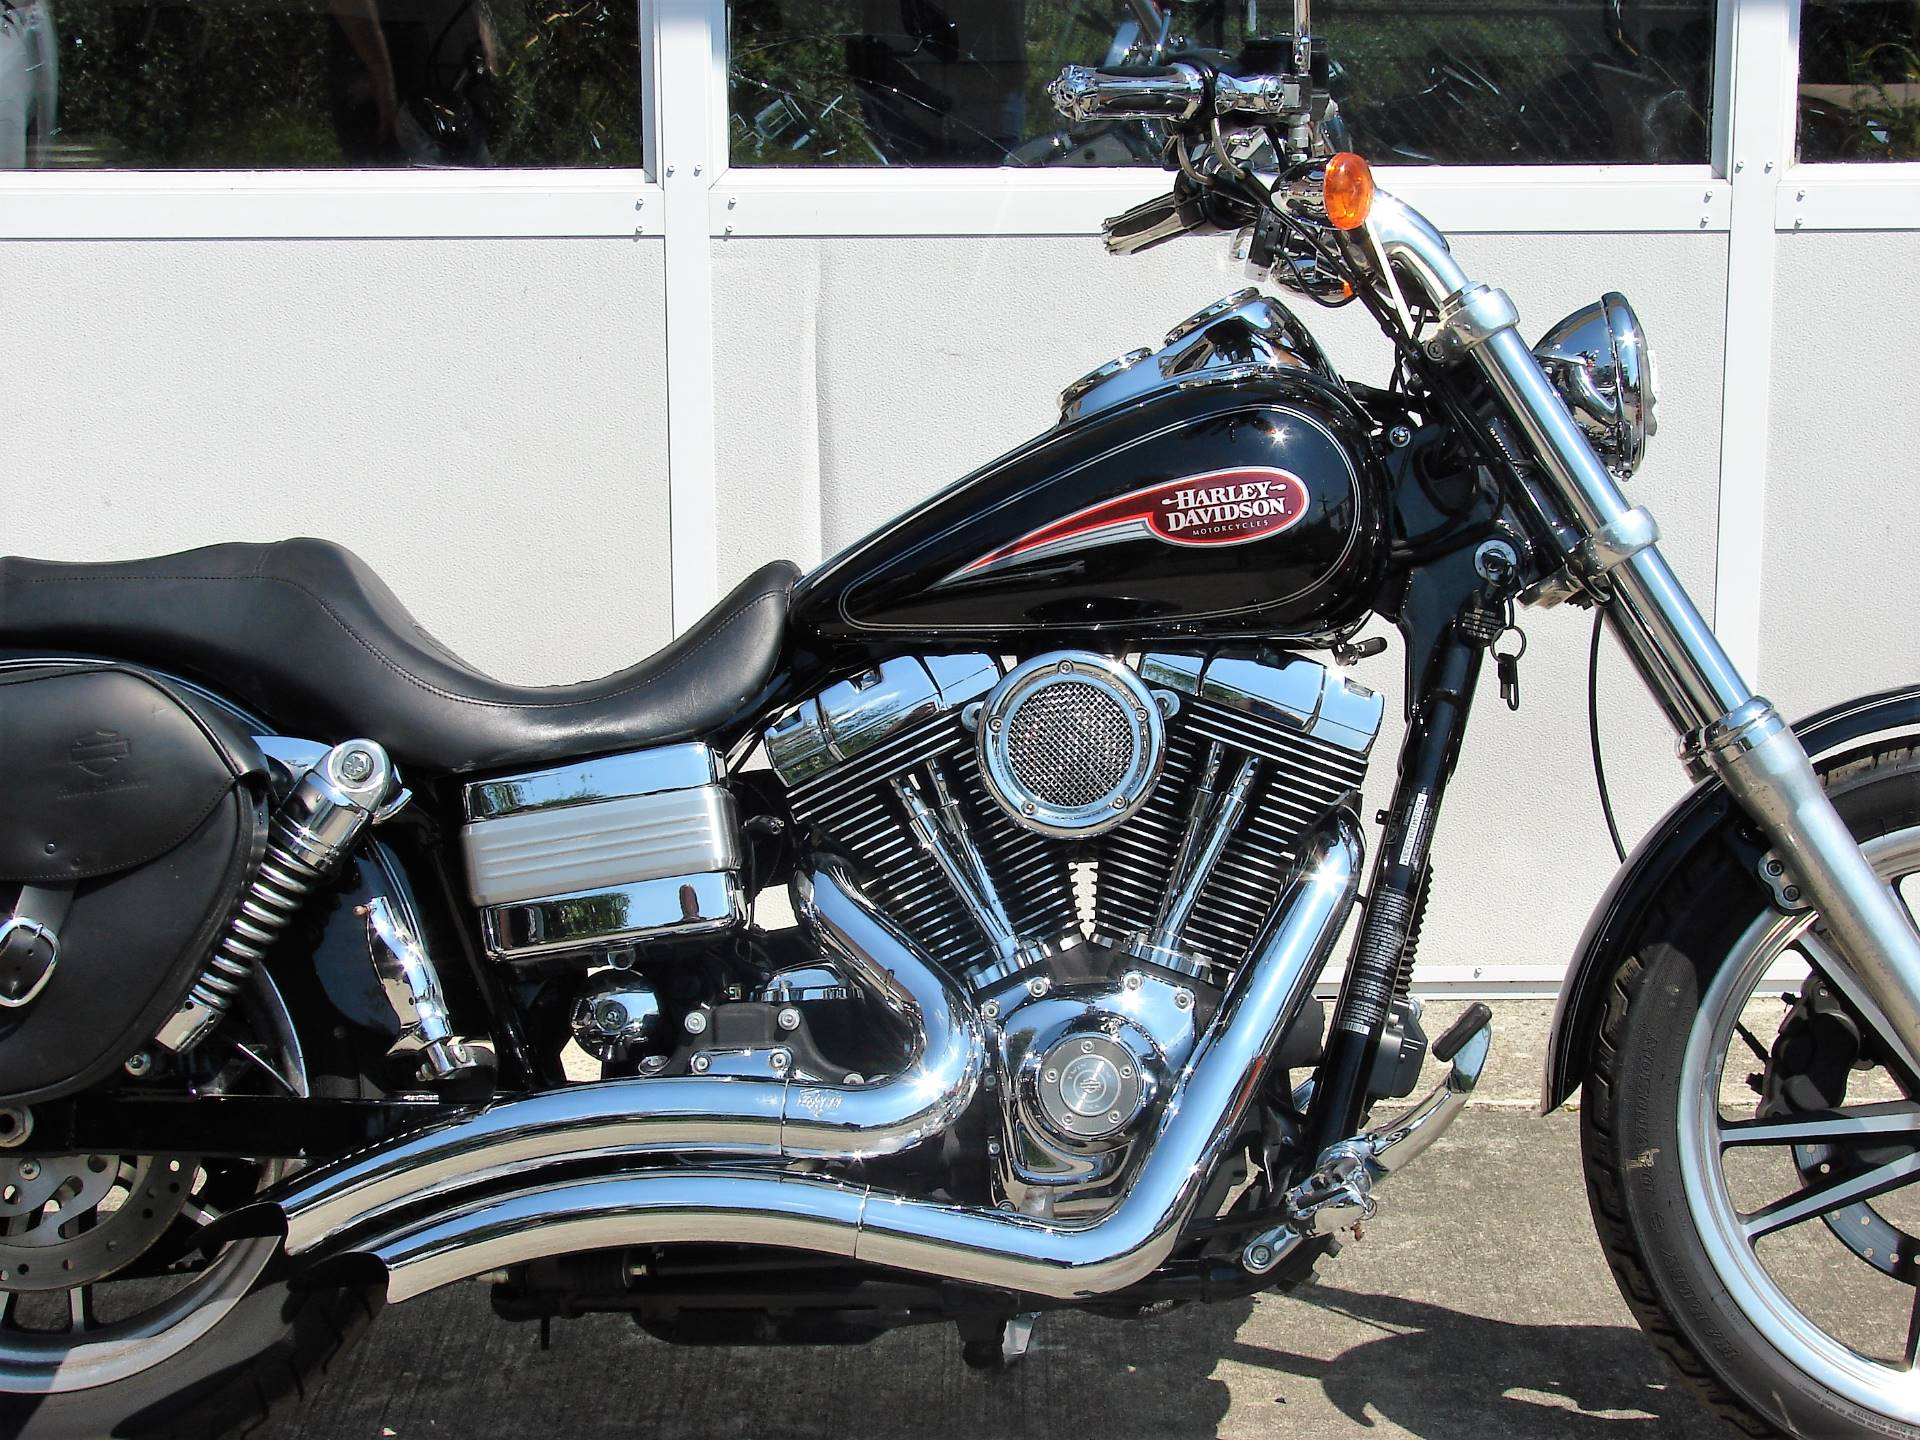 2008 Harley-Davidson FXDL Dyna Low Rider in Williamstown, New Jersey - Photo 3